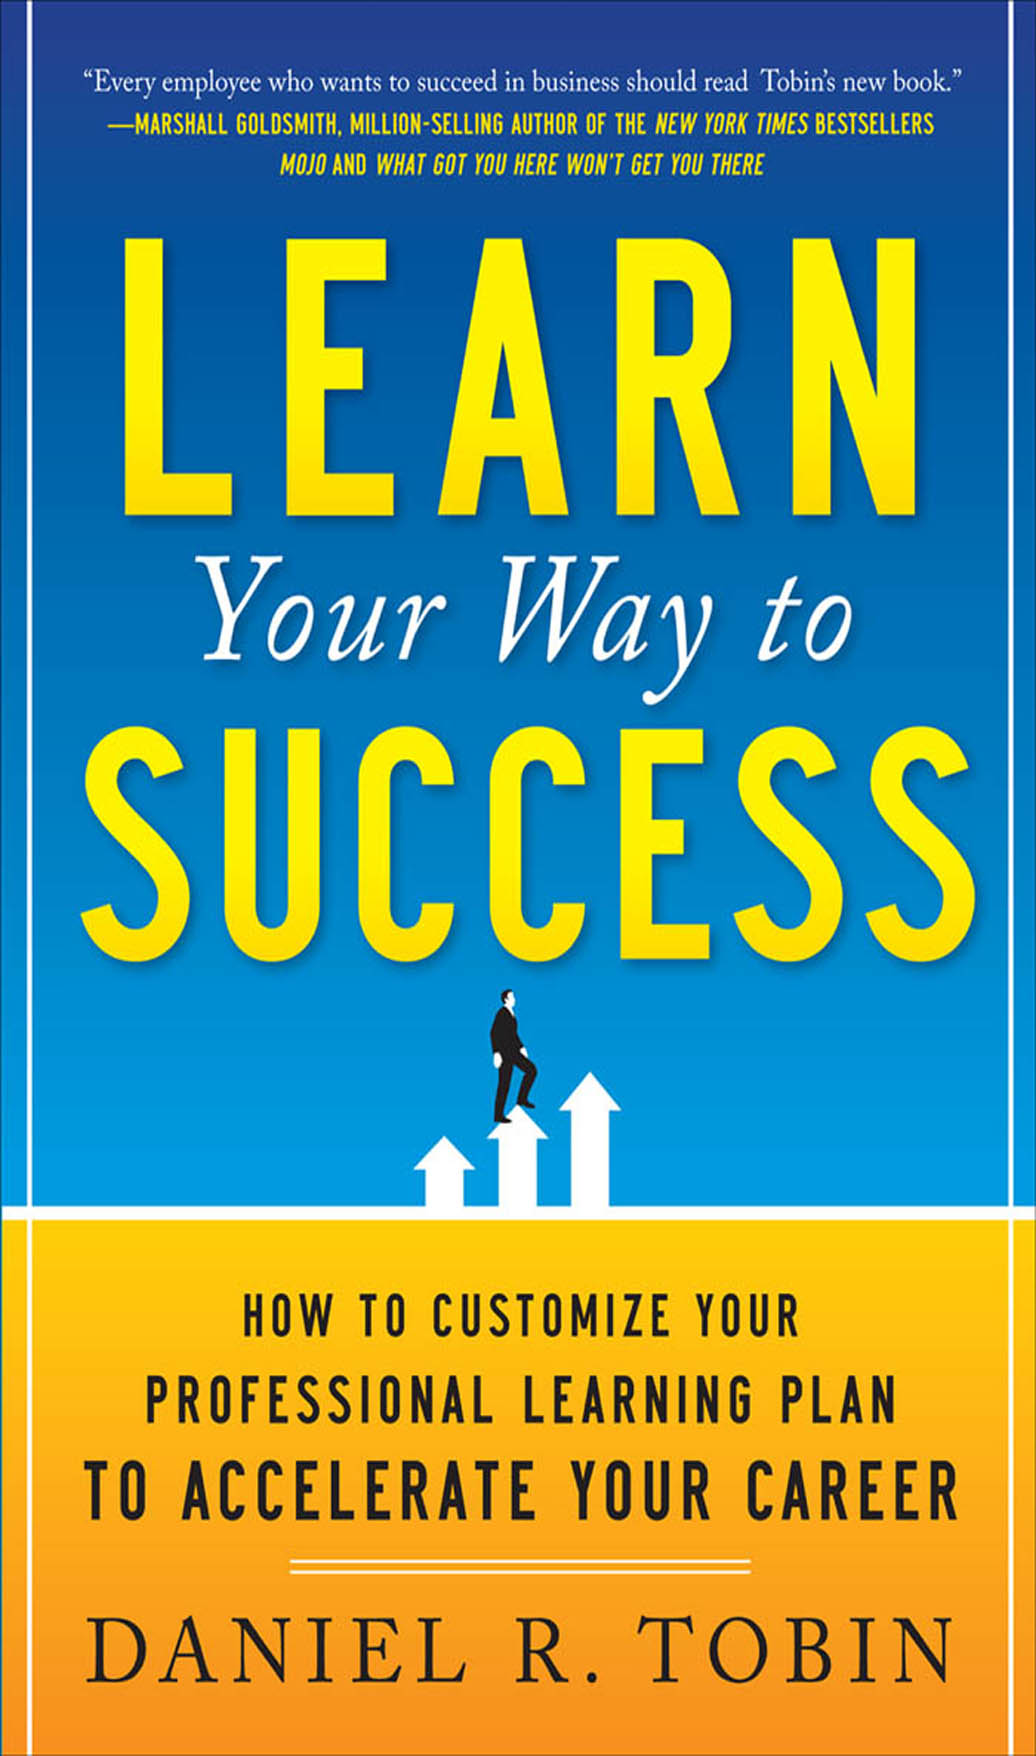 Download Ebook Learn Your Way to Success: How to Customize Your Professional Learning Plan to Accelerate Your Career by Daniel R. Tobin Pdf